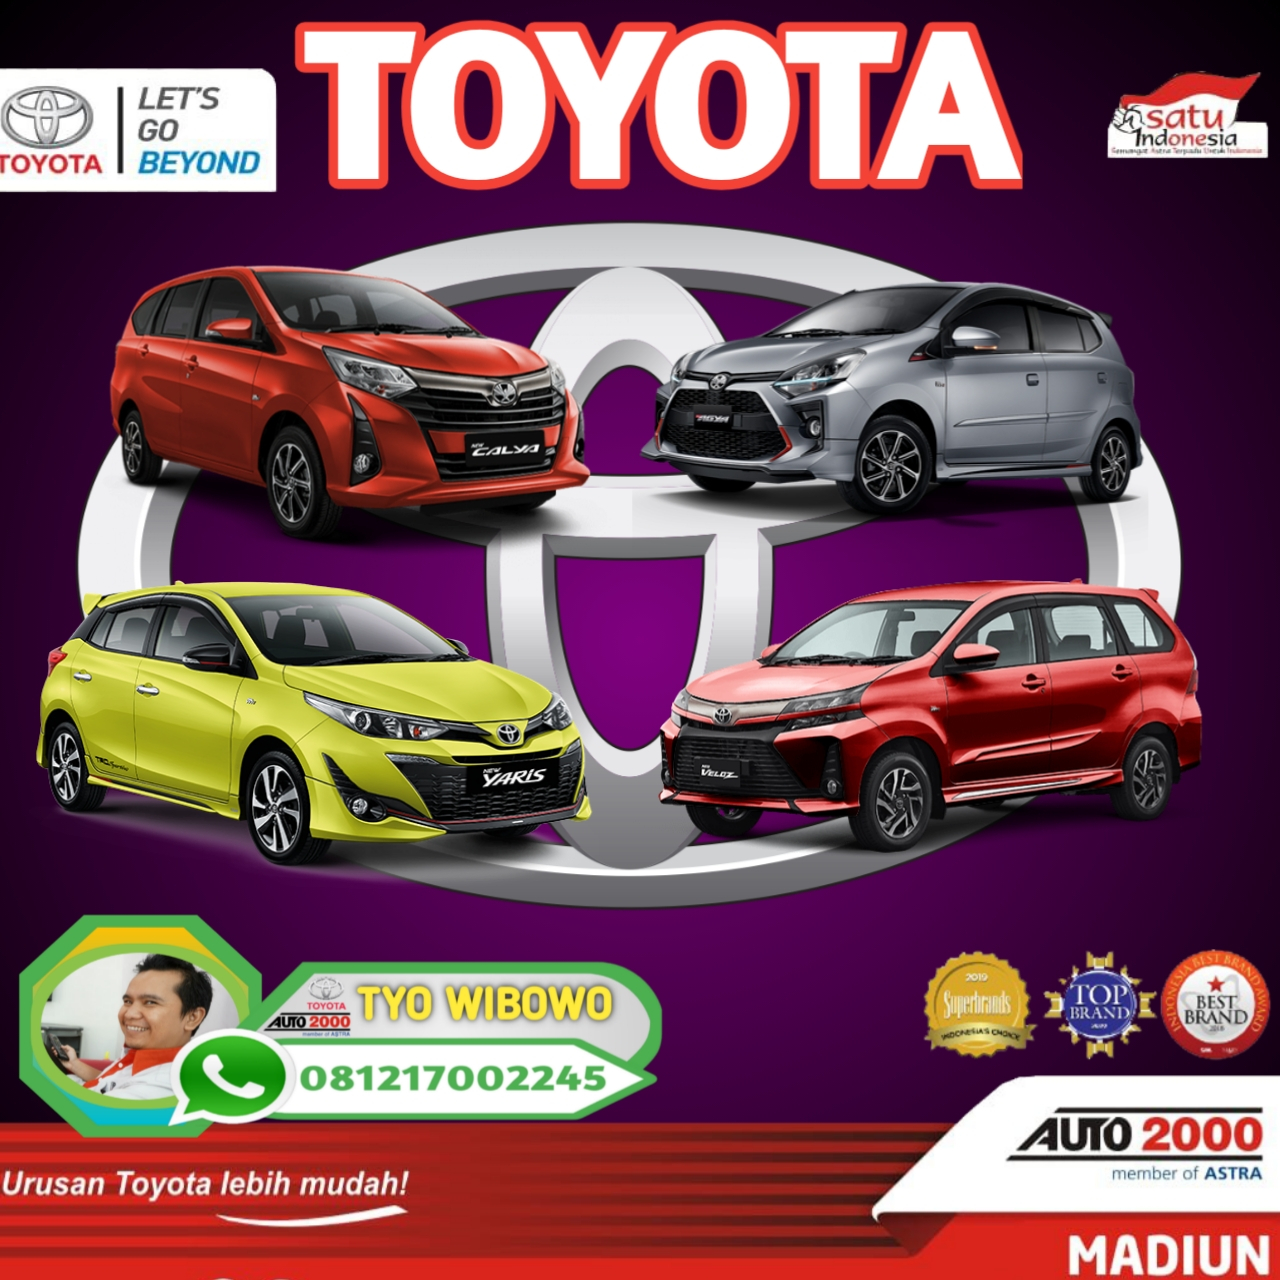 PROMO APRIL LEBARAN 2020 , CALL TYO 081217002245